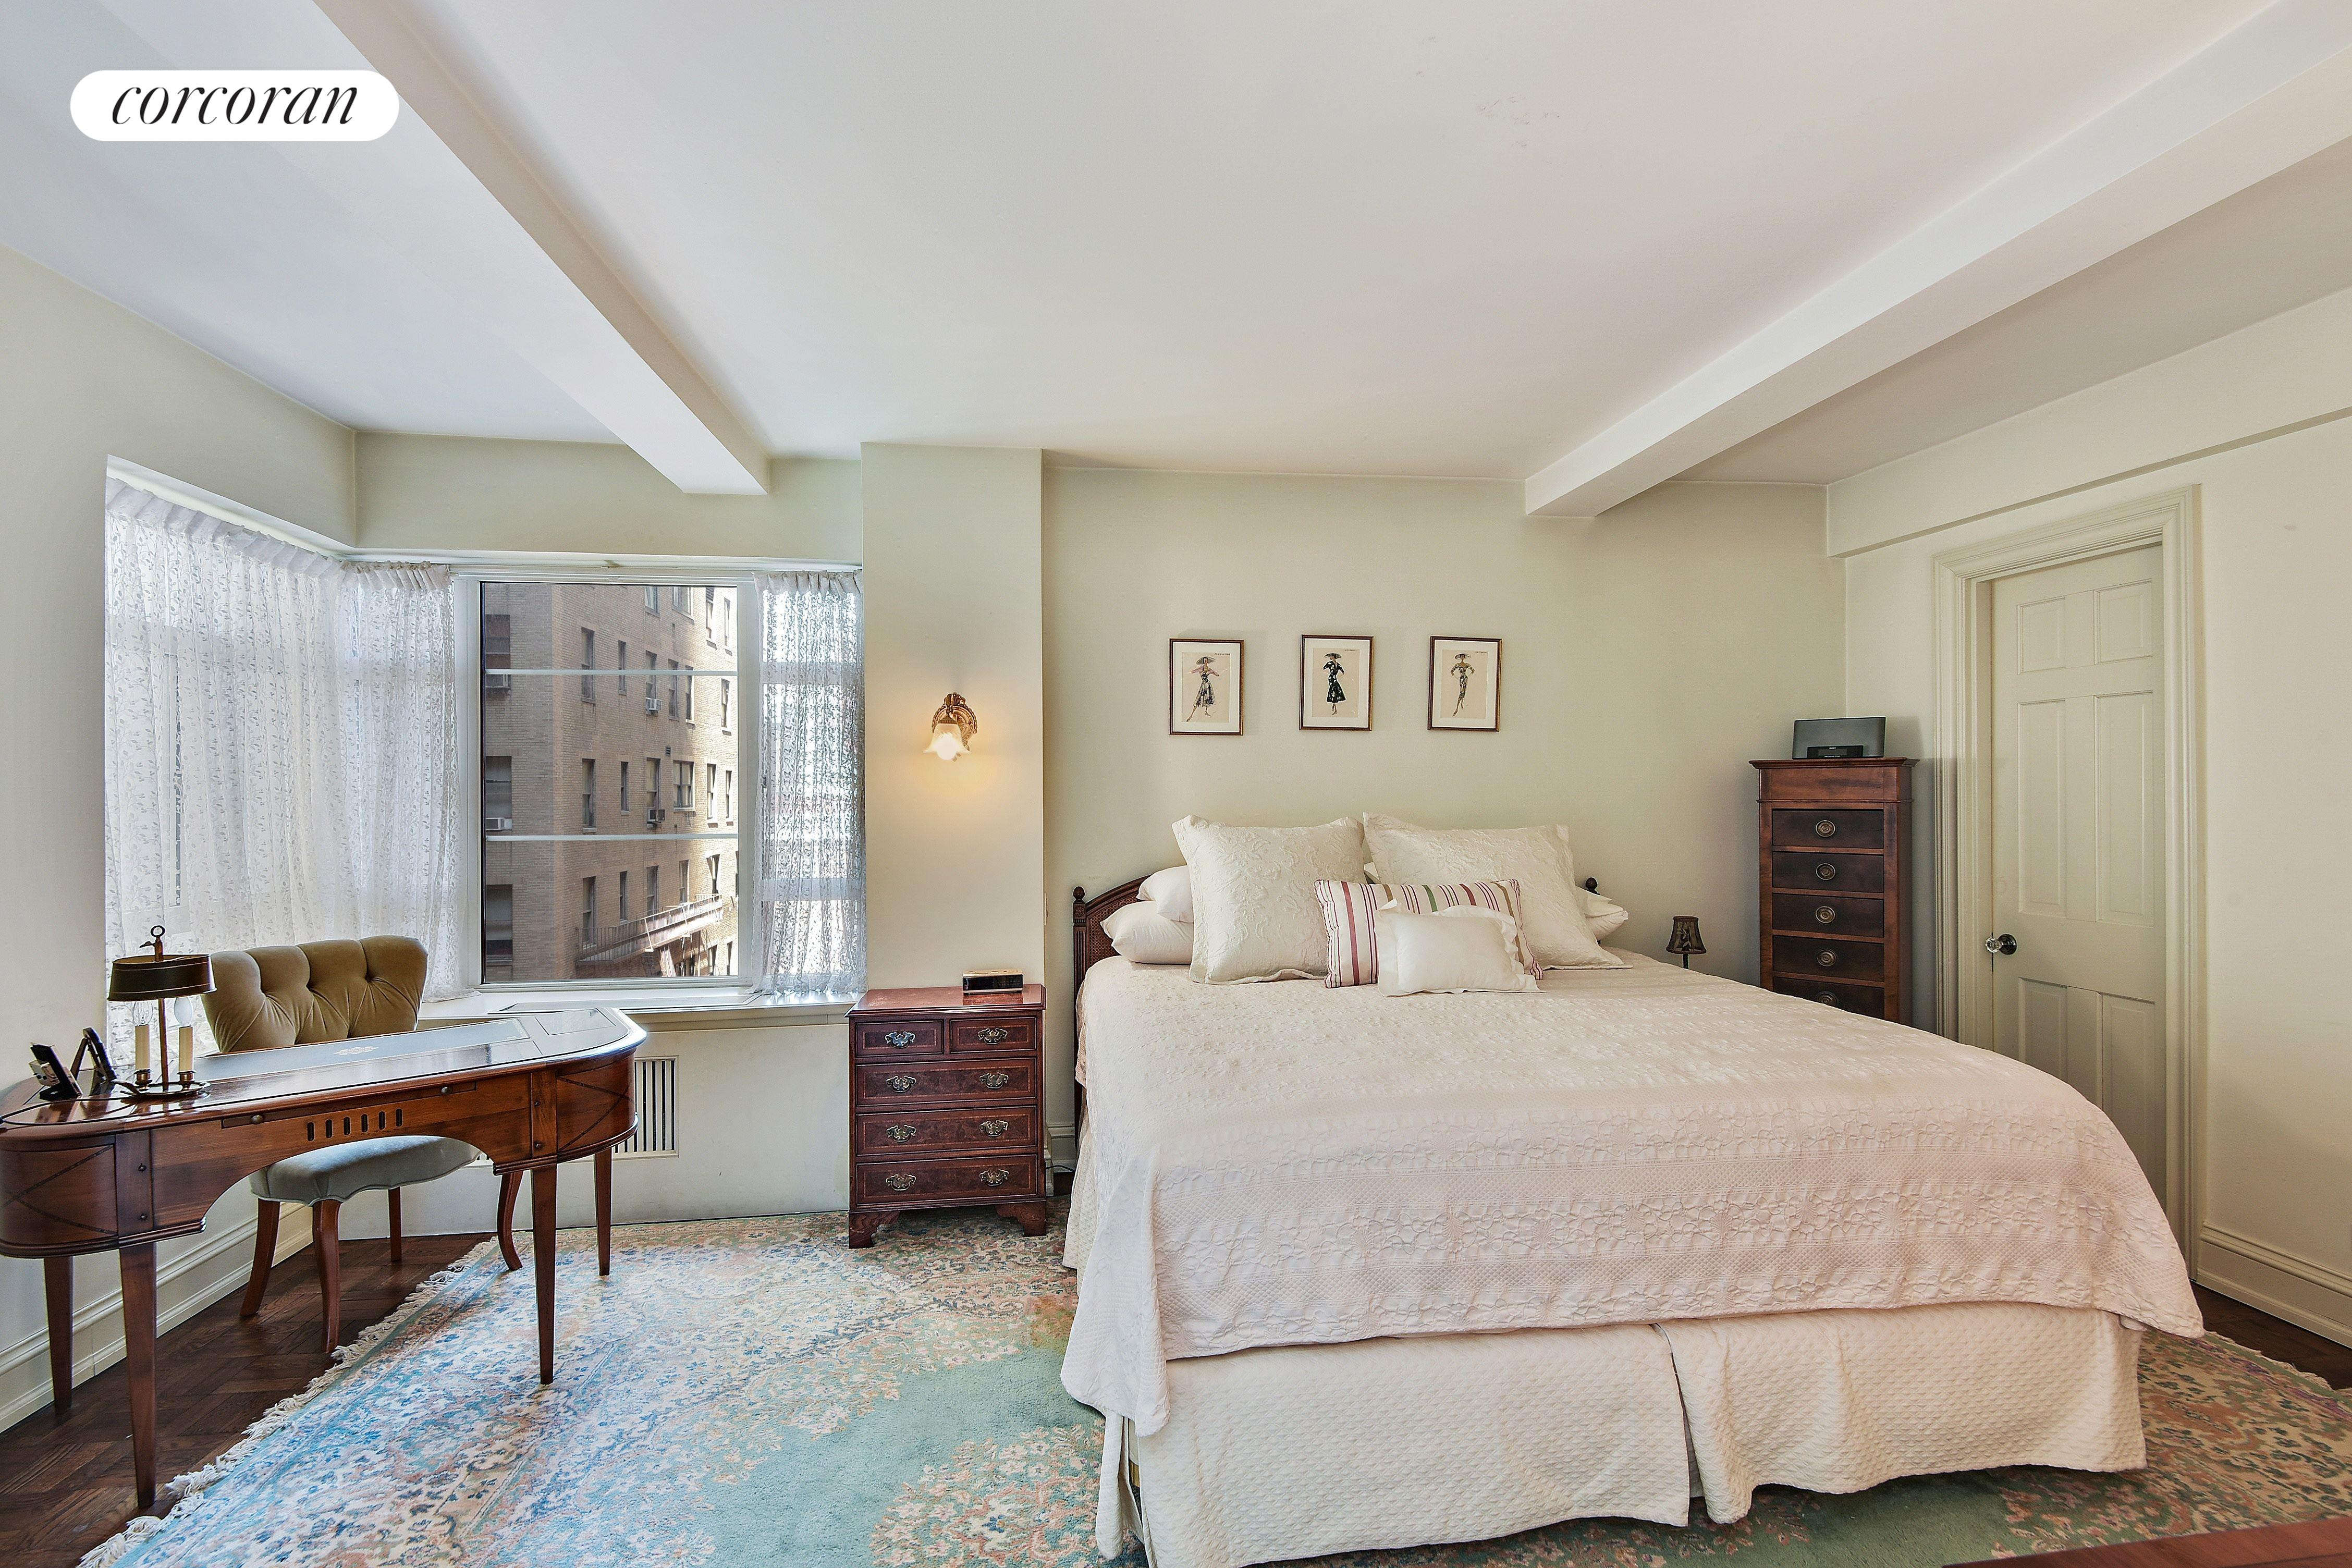 750 Park Avenue, 6BC, Oversized Living Room Overlooking Park Ave!